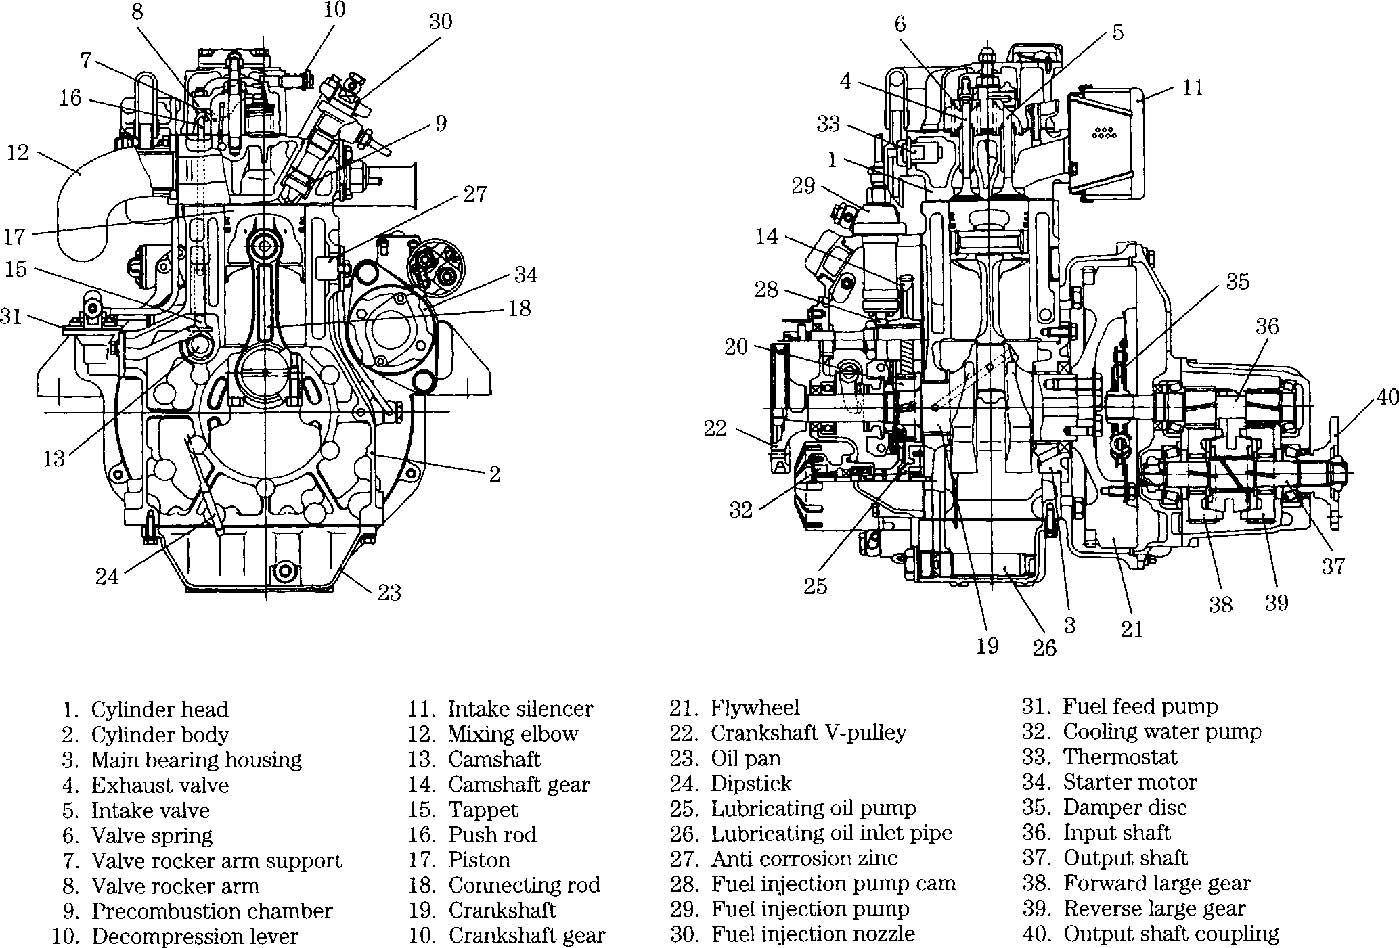 combustion engine parts diagram